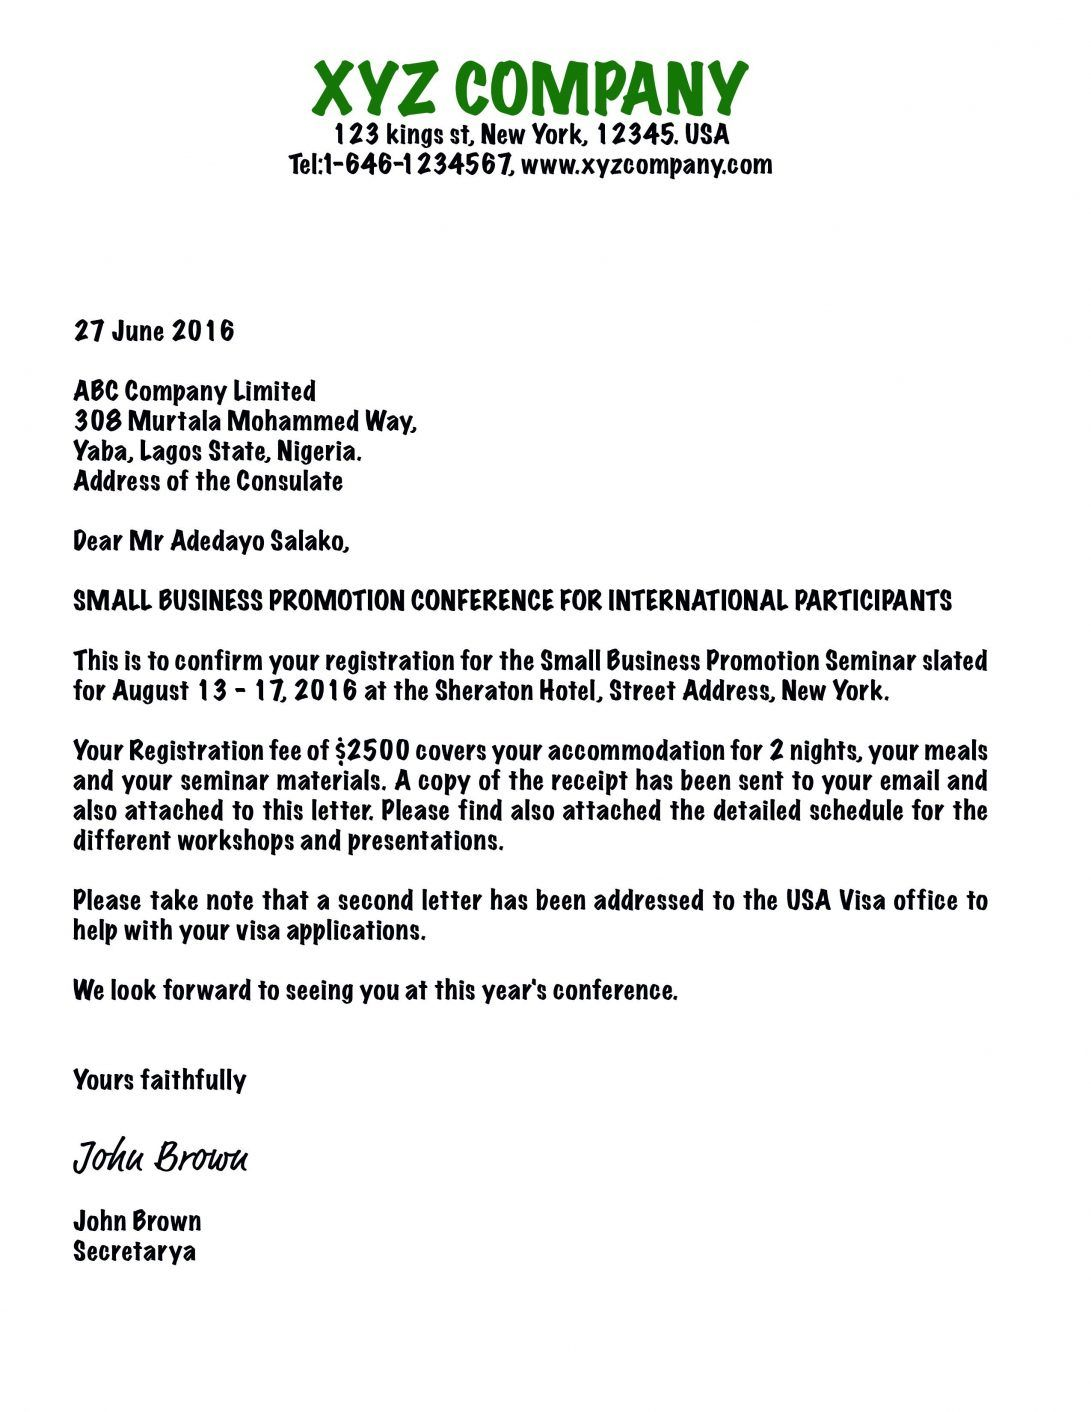 The charming Format Of Business Invitation Letter Sample